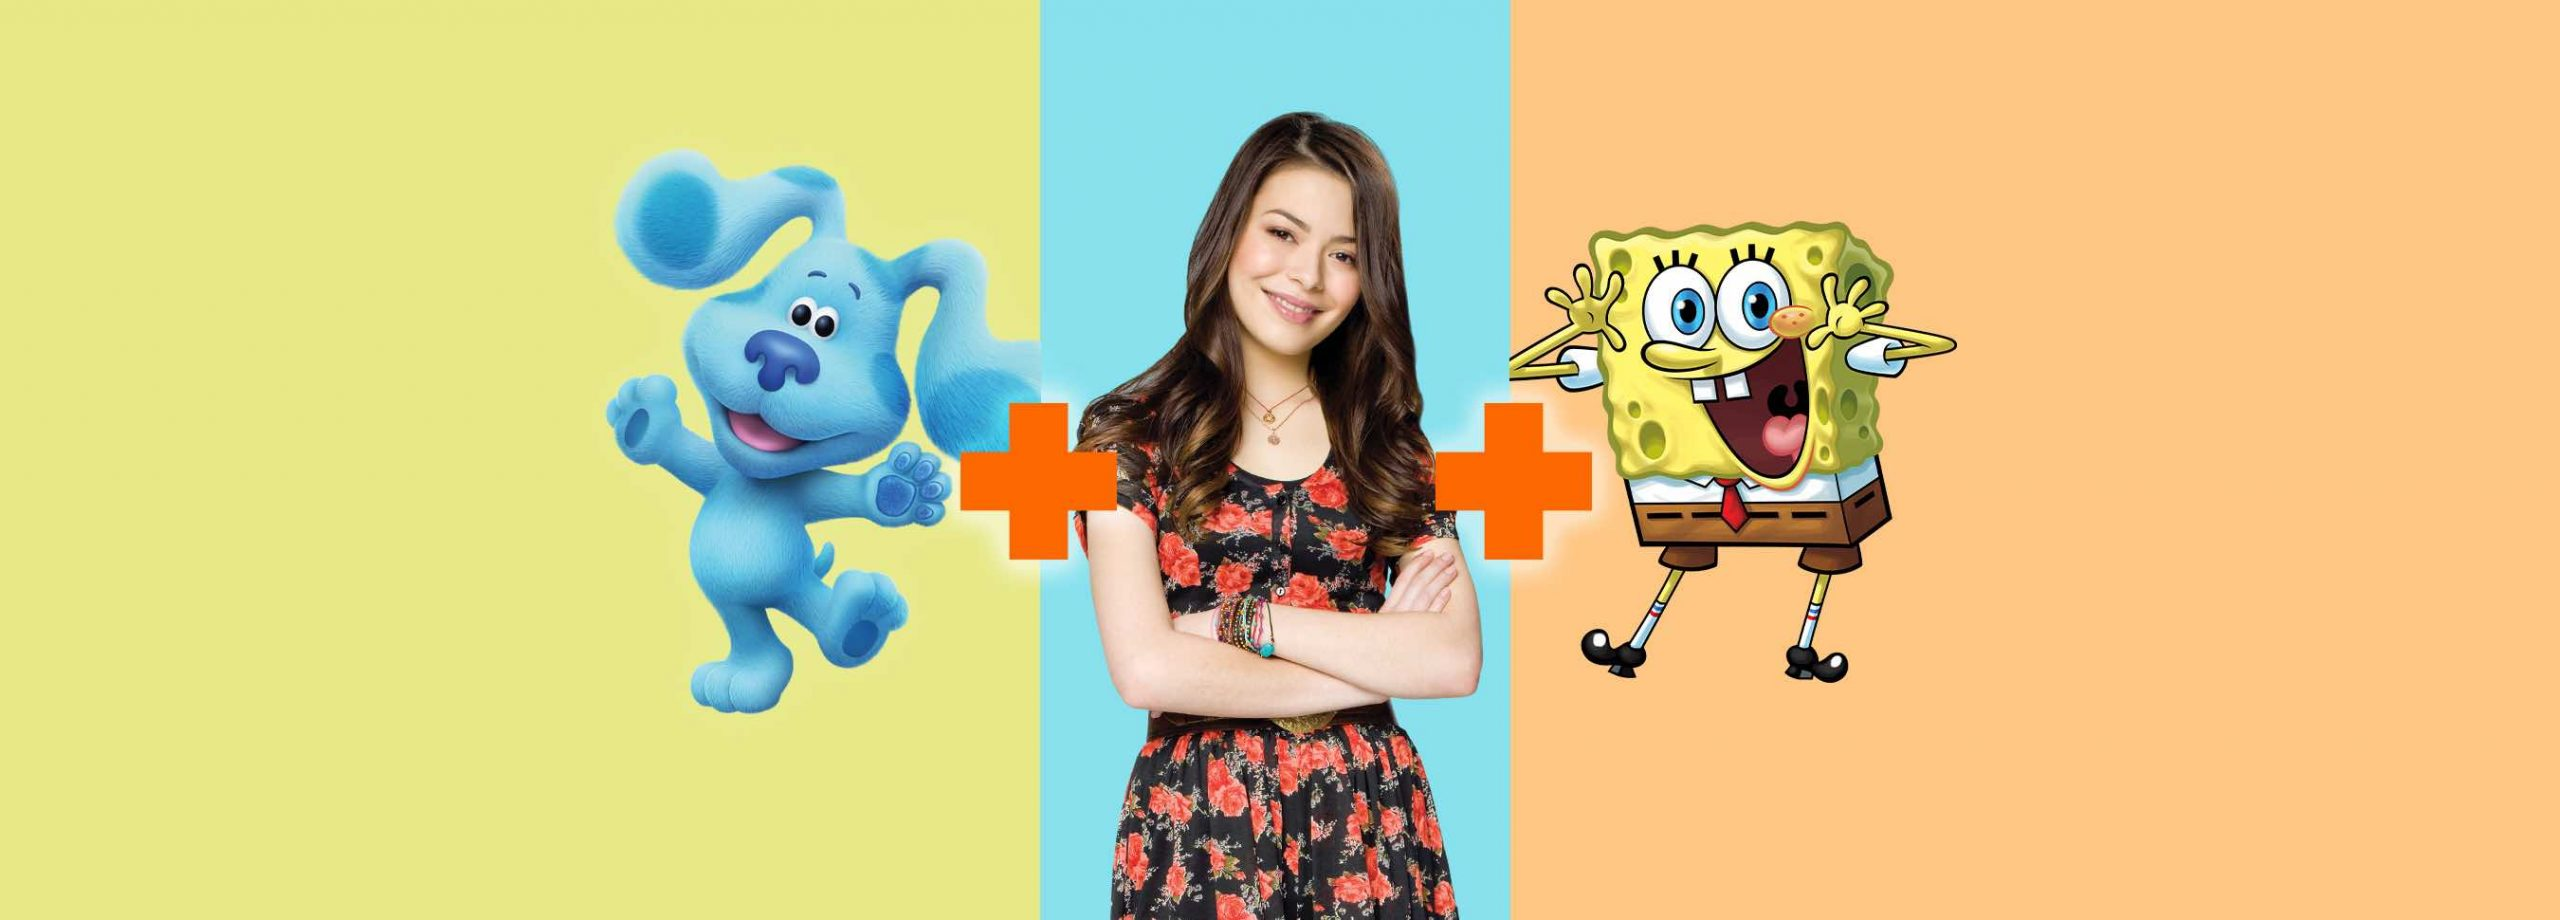 Nick Plus Featuring Blues Clues, I Carly and Spongebob